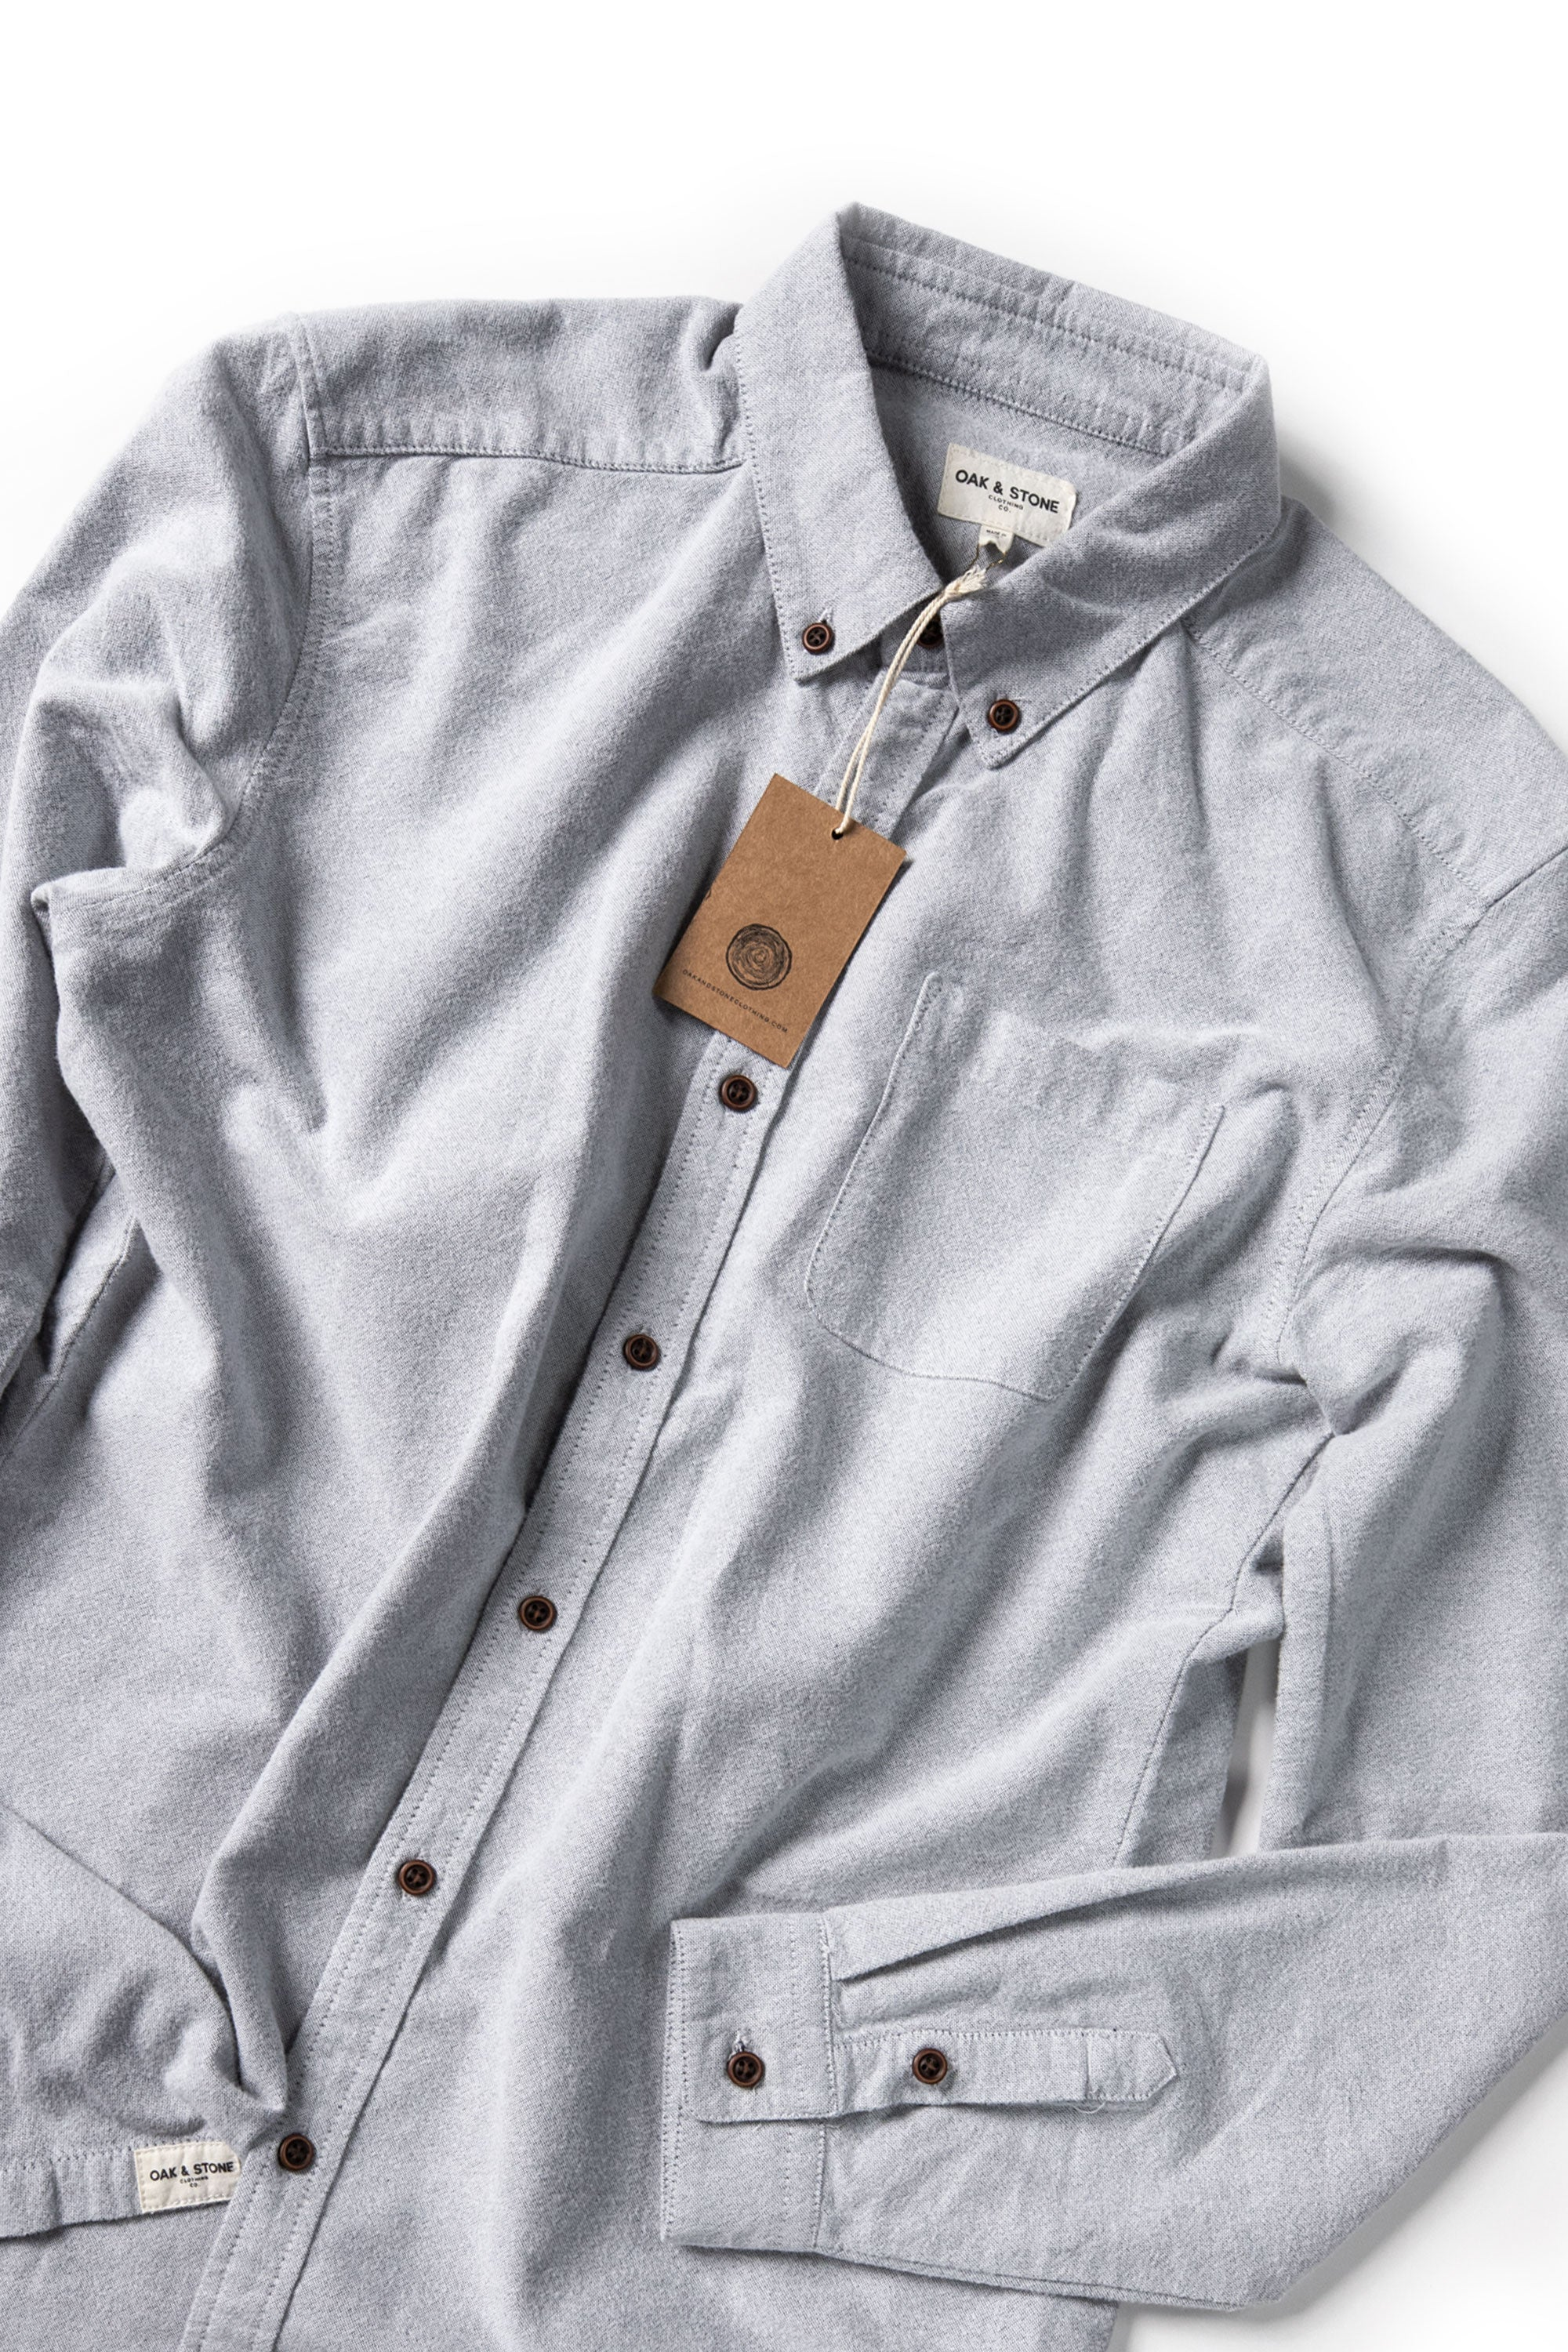 The Essential L/S - Grey - Oak & Stone Clothing Co.